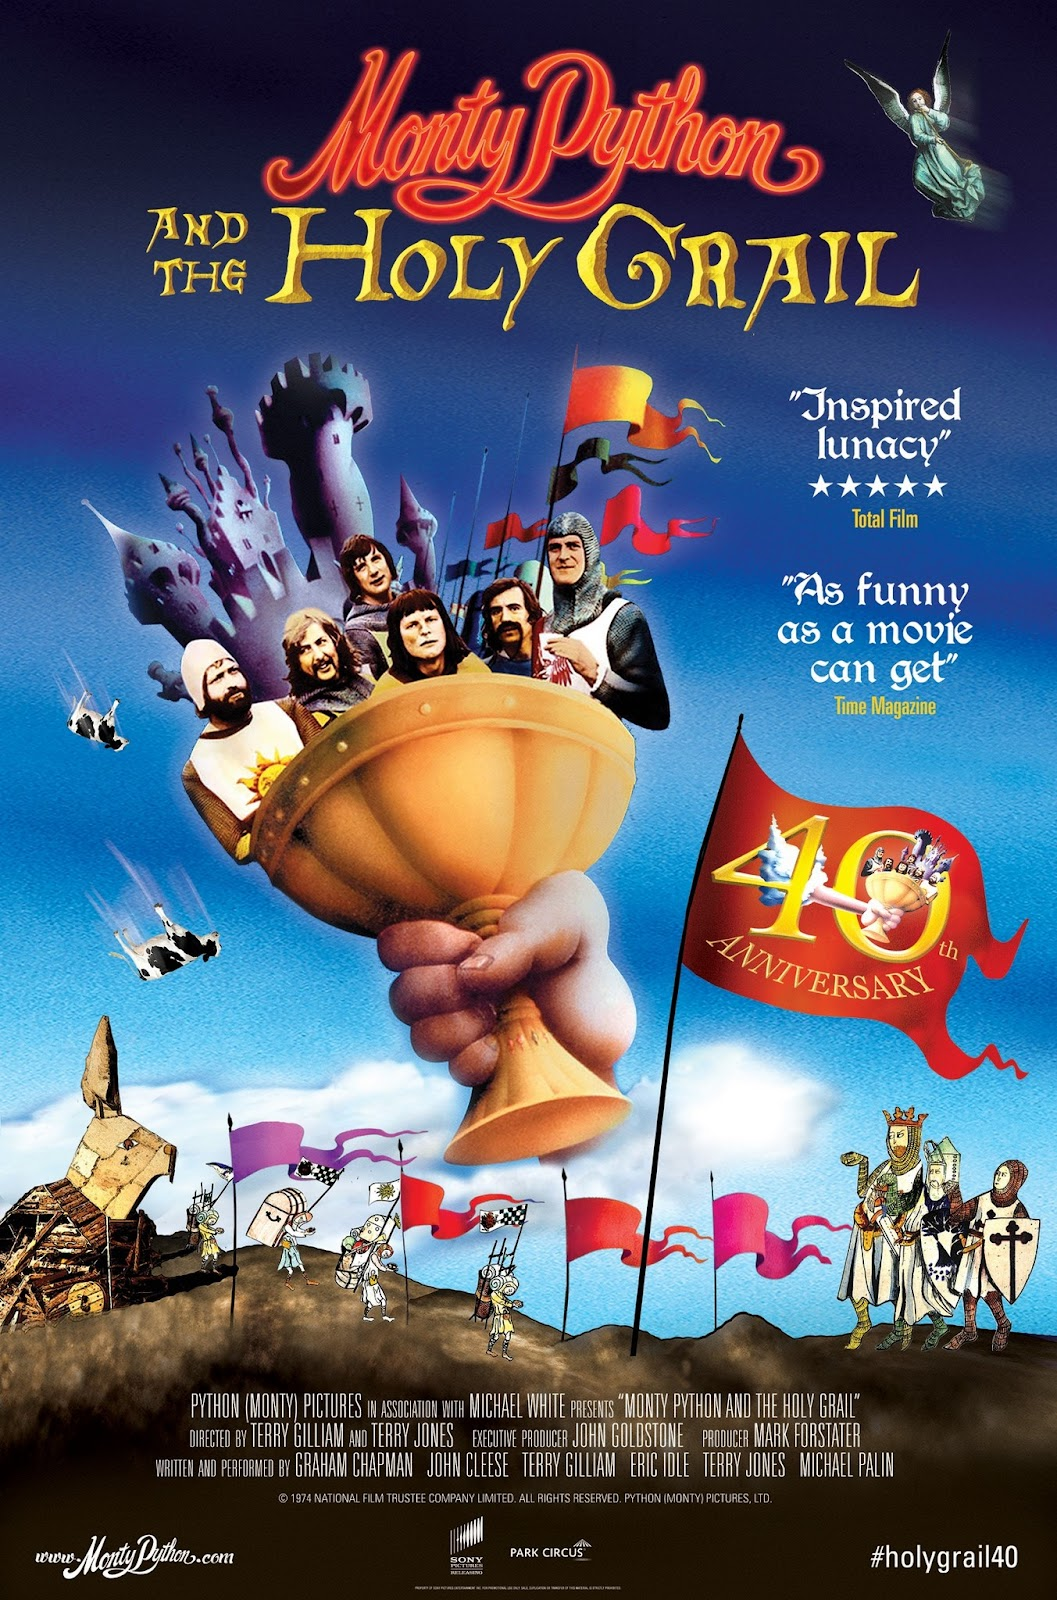 Park Circus Presents Monty Python and the Holy Grail 40th Anniversary Screening Poster